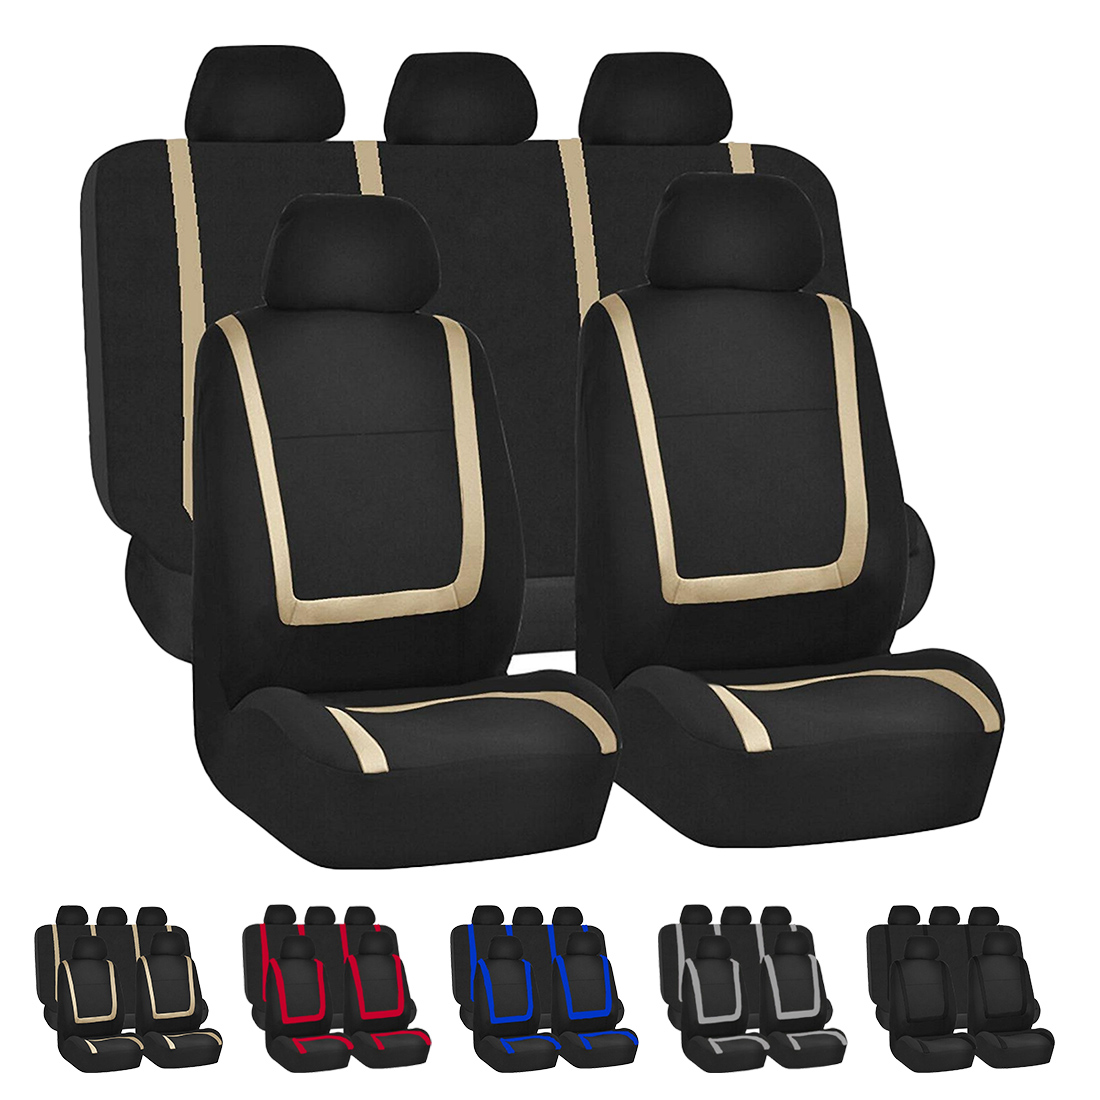 Dewtreetali Universal Car Seat Cover 9pcs Full Set Seat Covers for Crossovers Sedans Auto font b